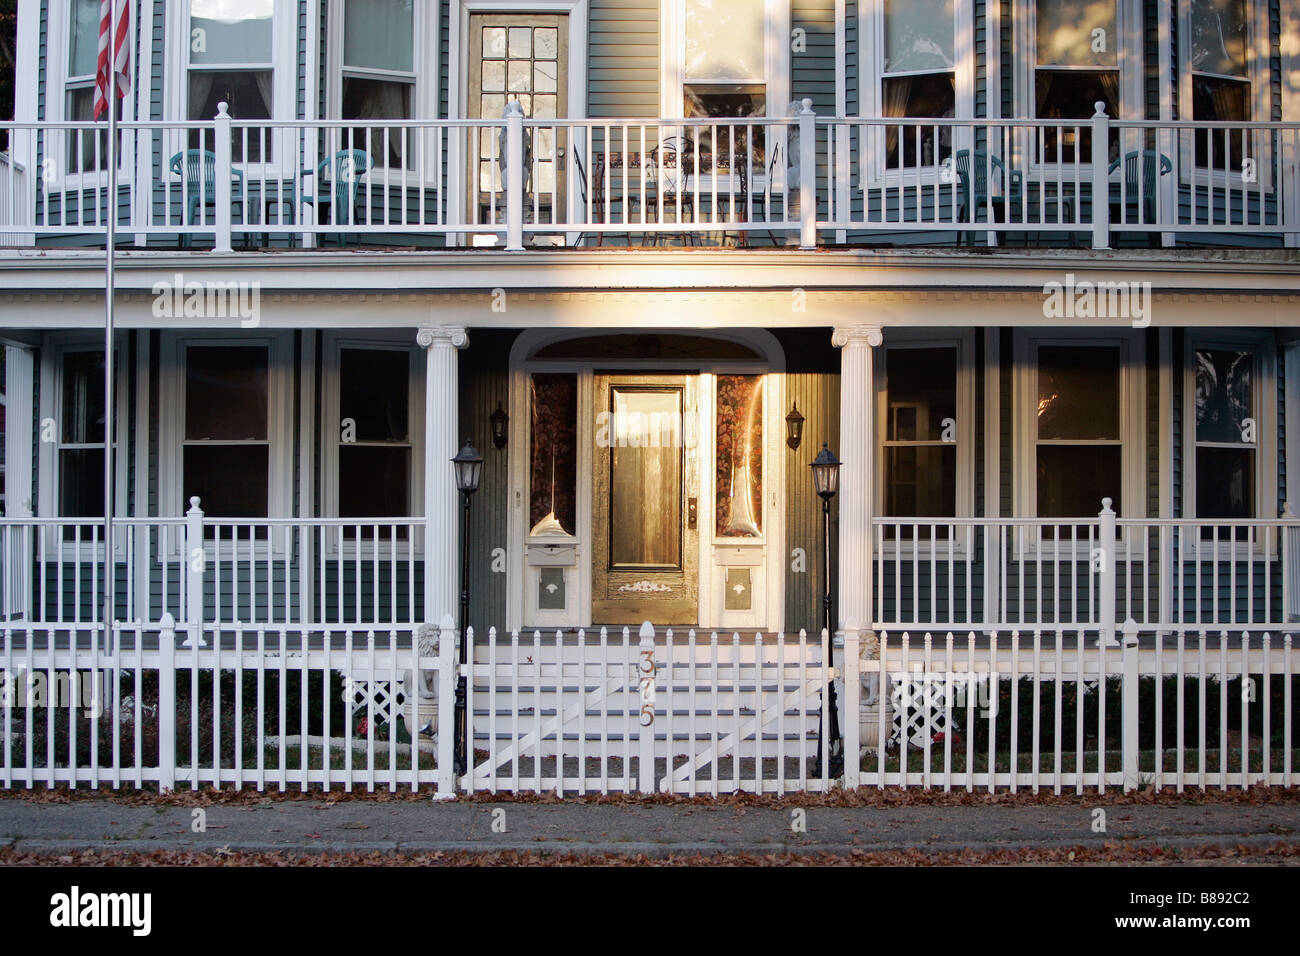 House white fence porches two story balcony - Stock Image